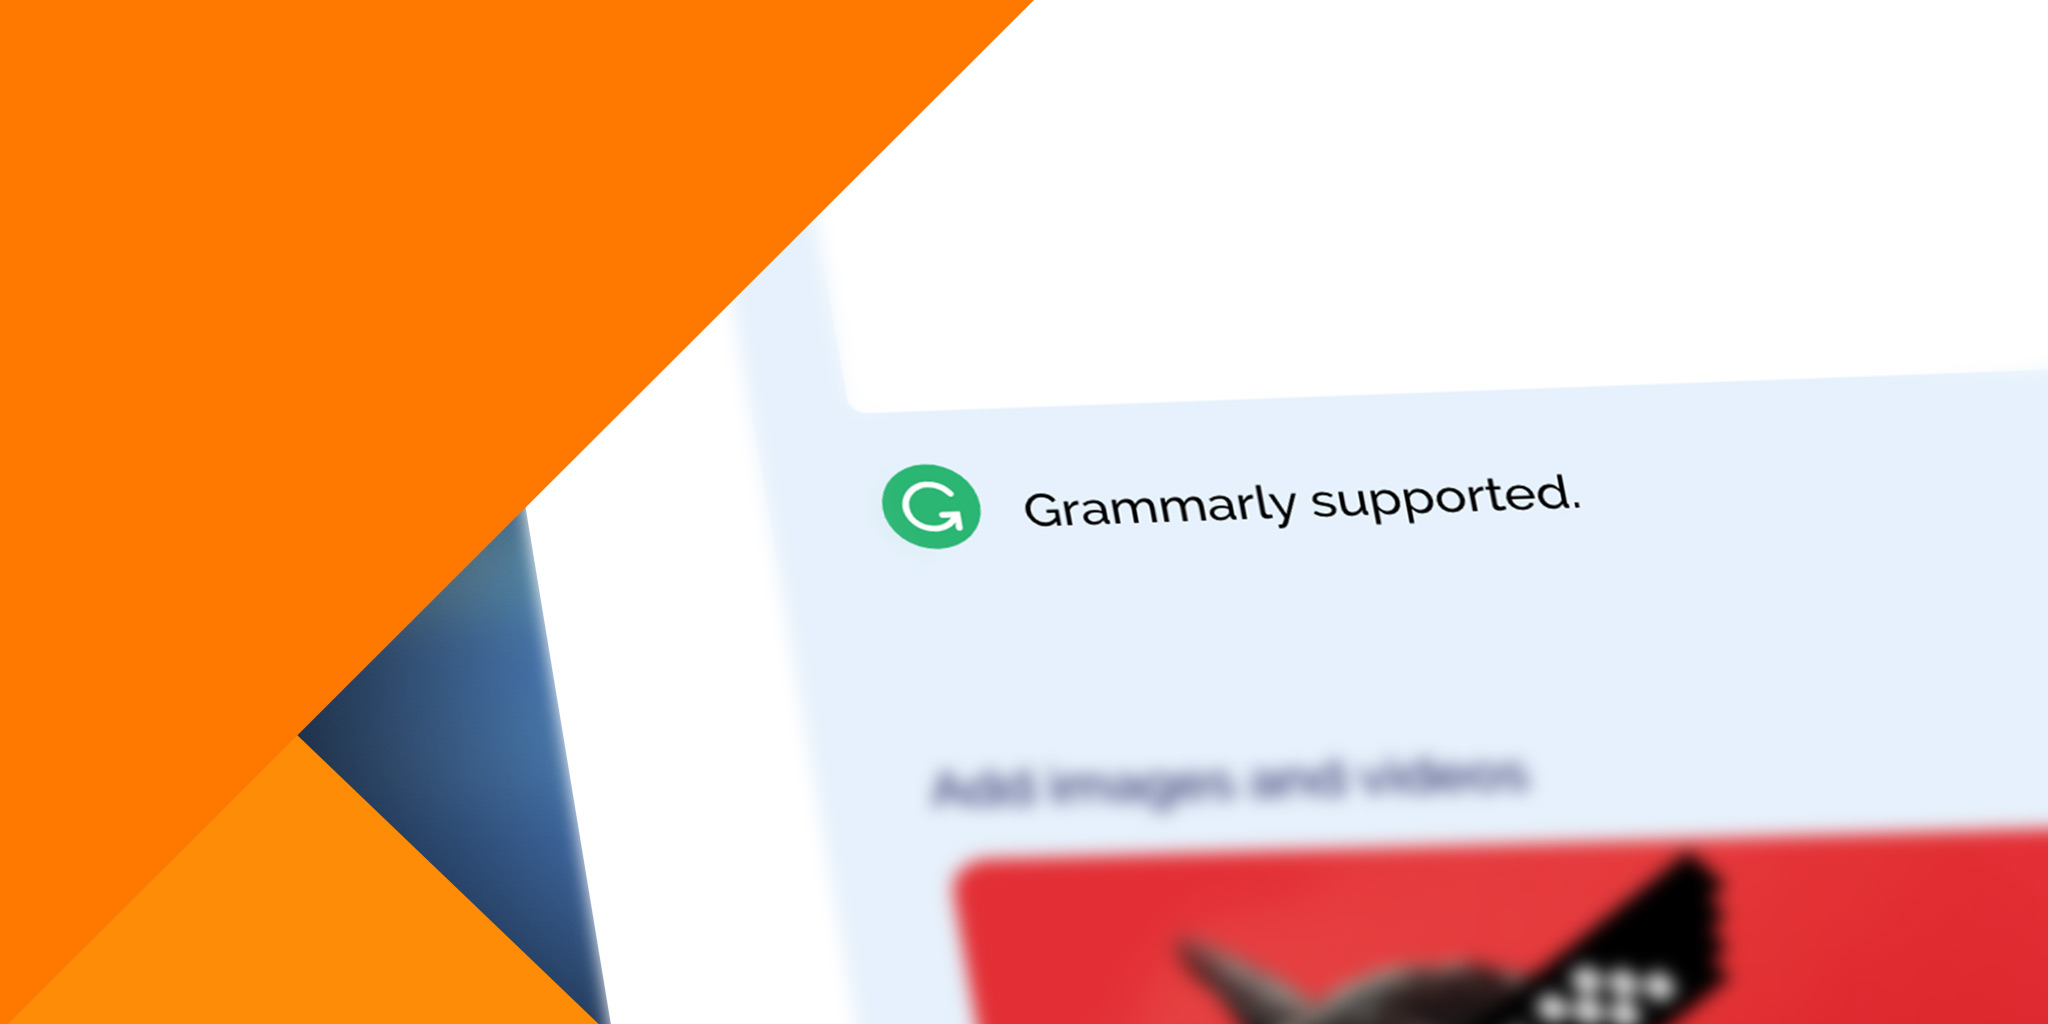 Metigy now supports Grammarly in it's AI driven content development solution